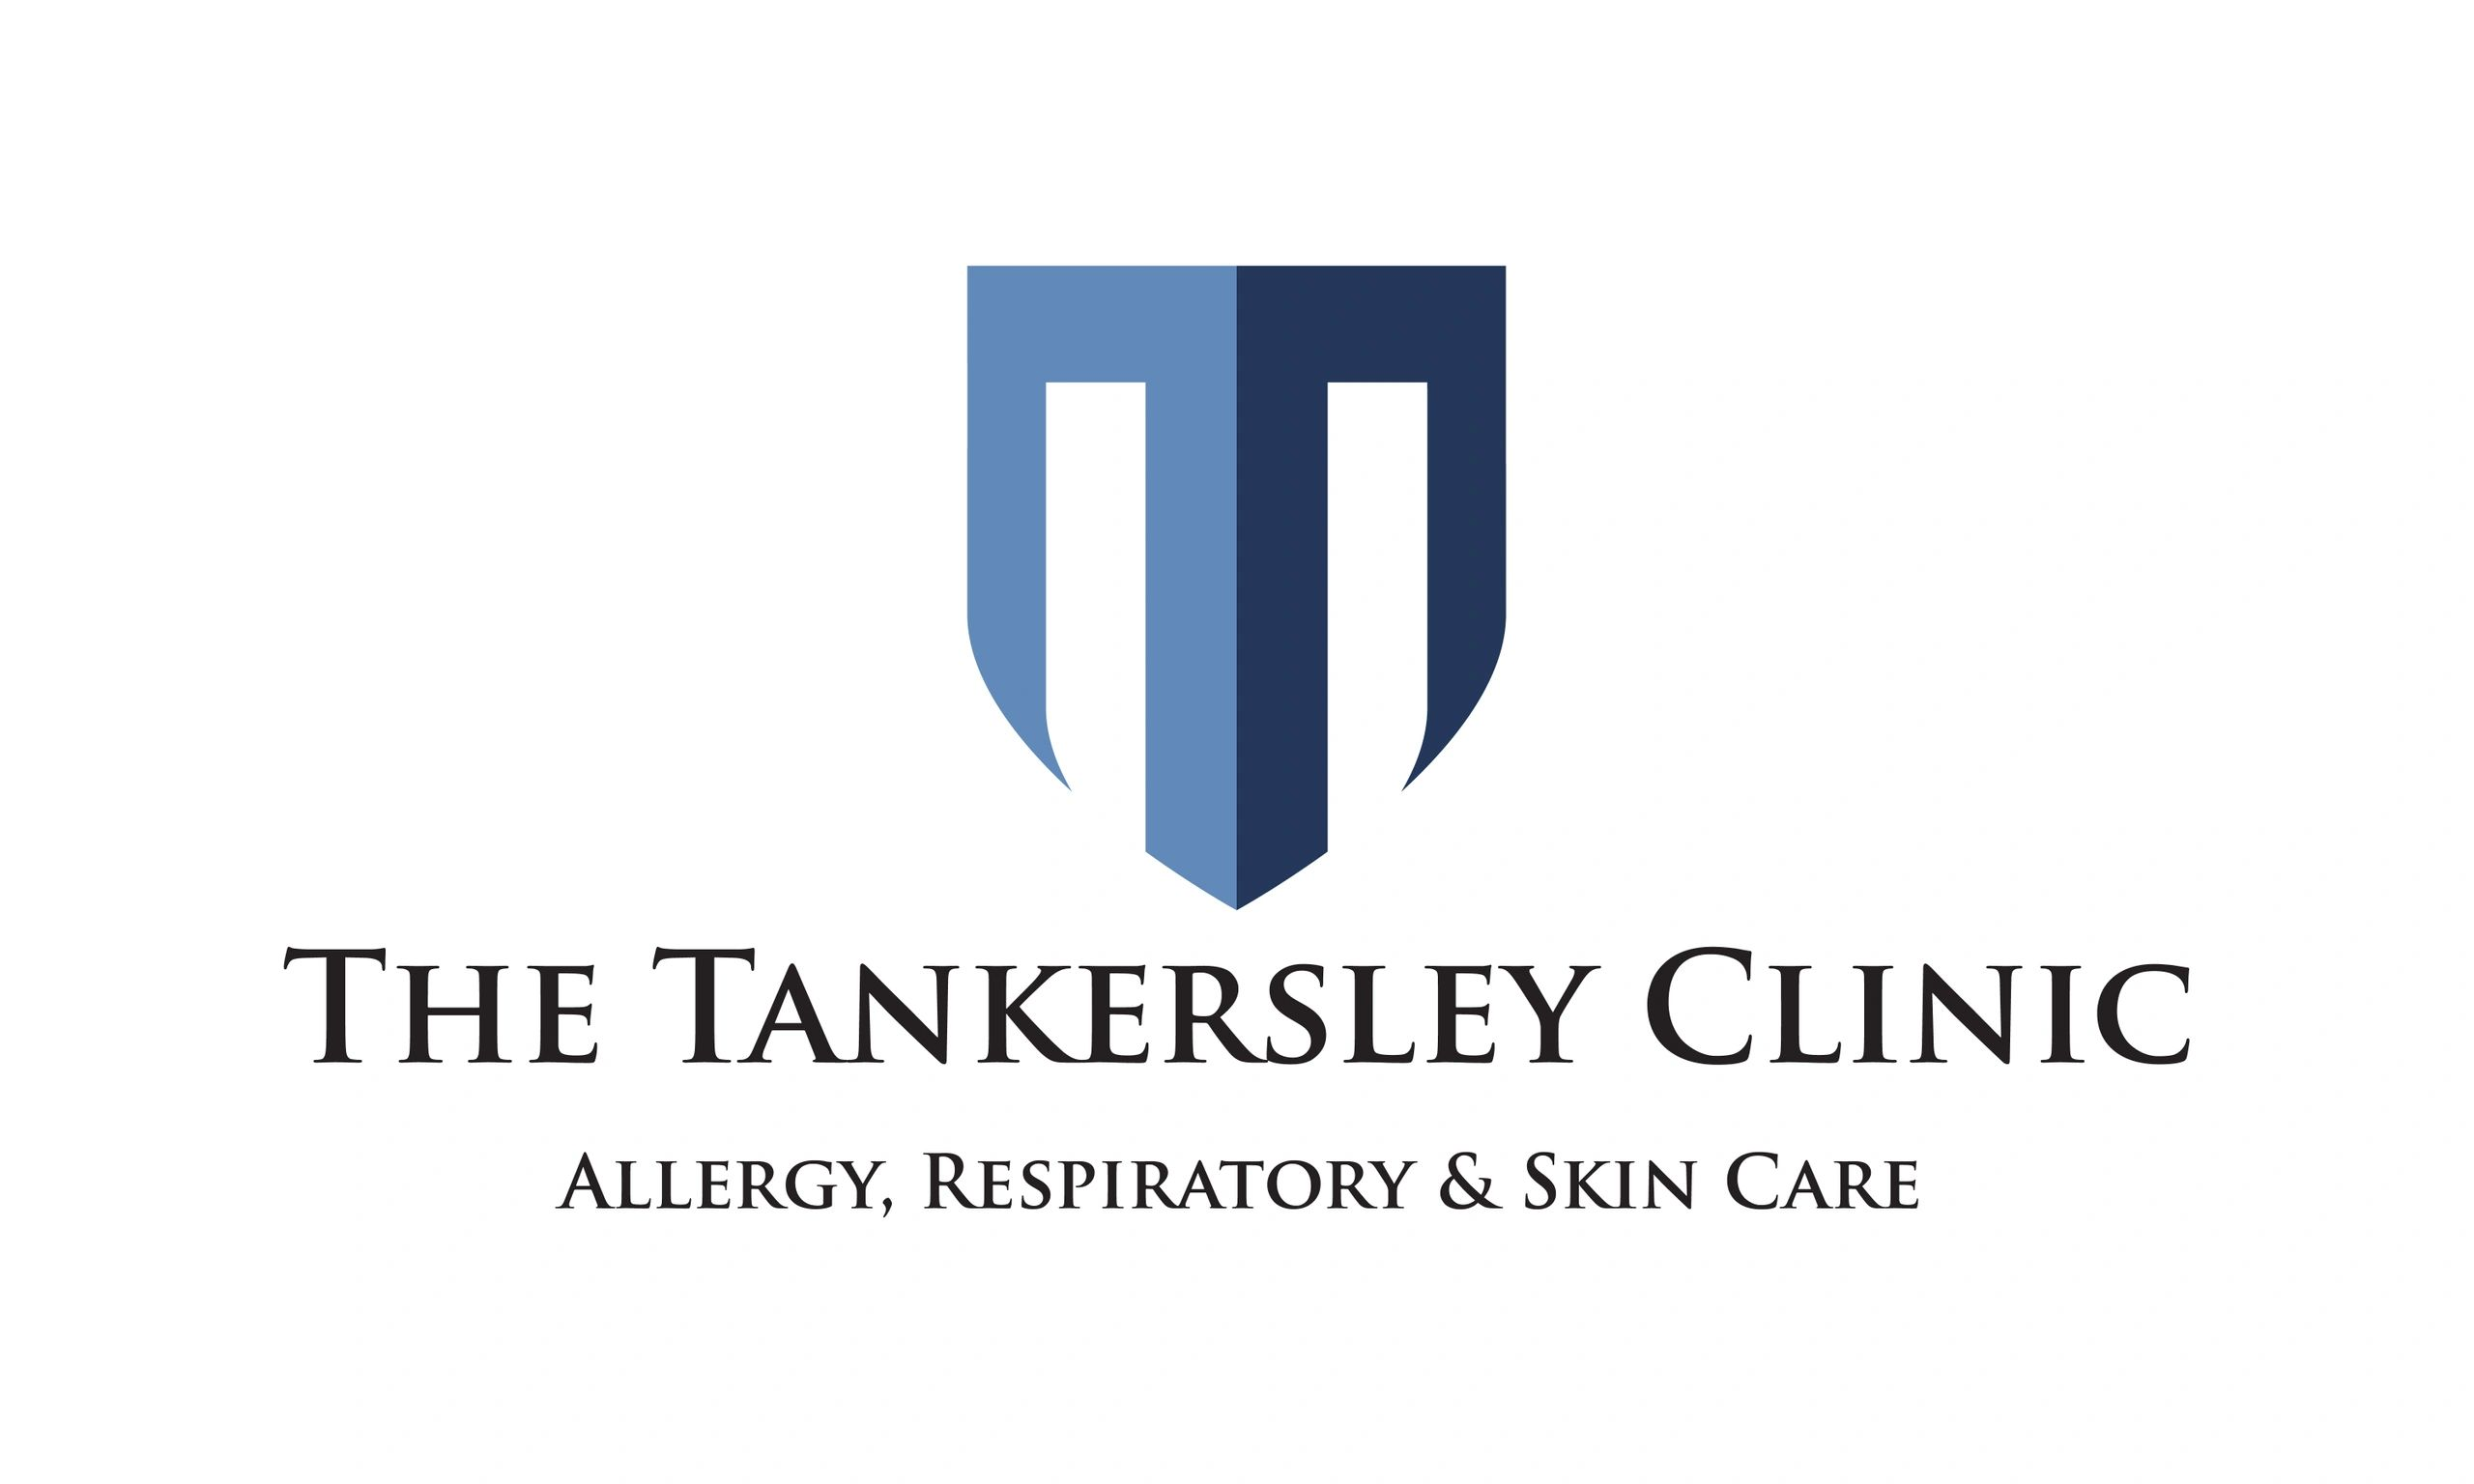 The Mid-South's Leading Center for Allergy, Respiratory and Skin Care